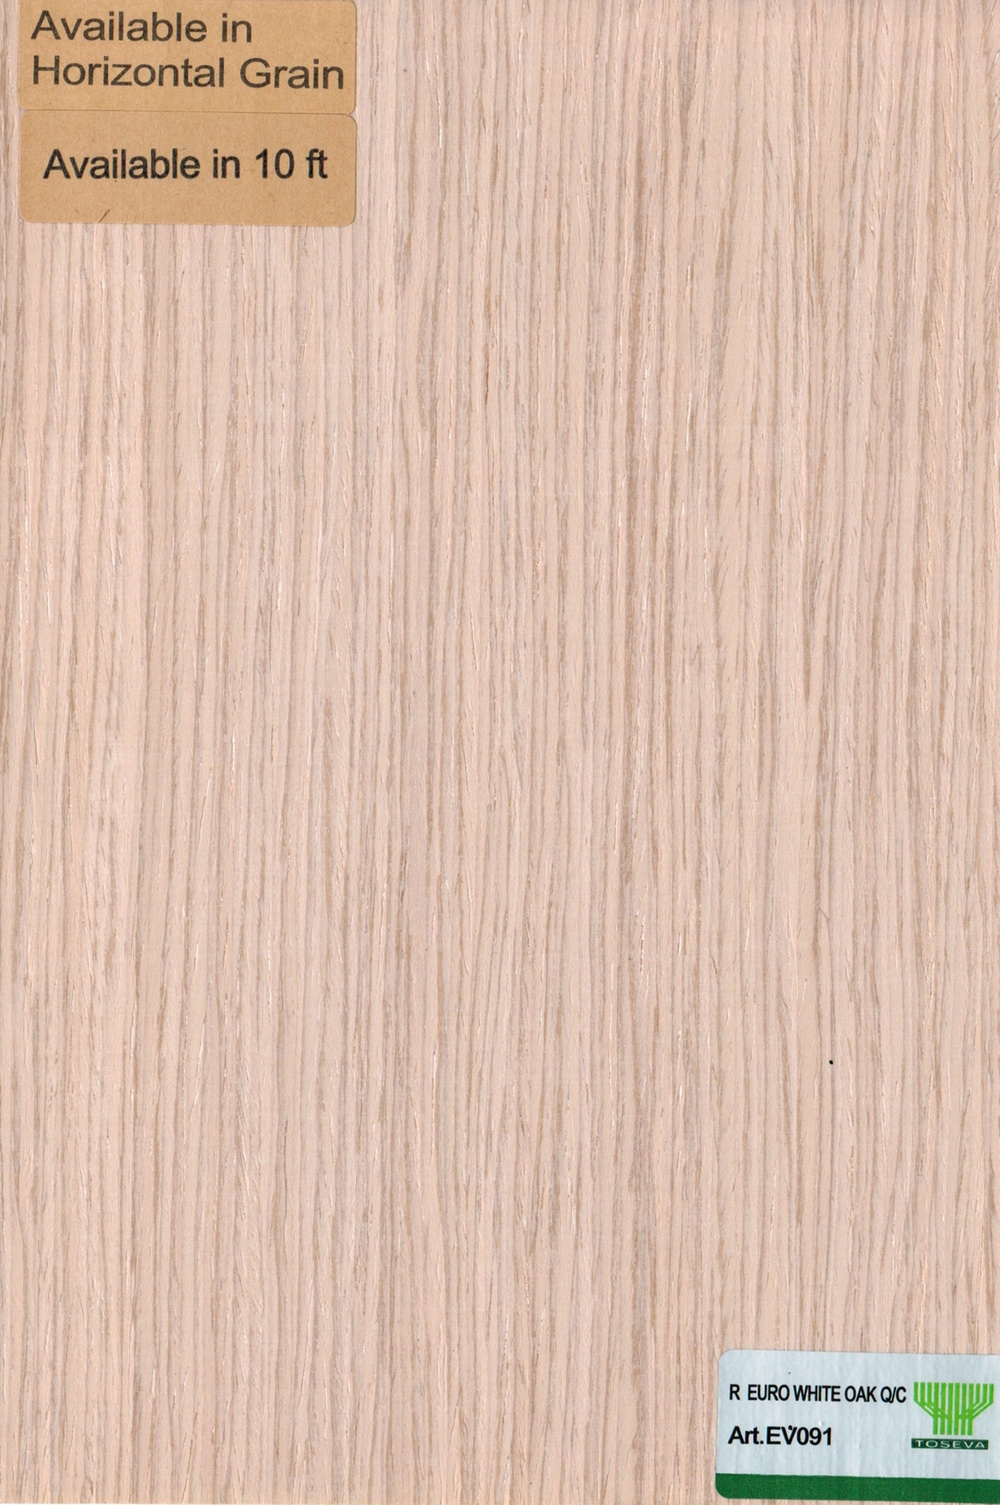 R EURO WHITE OAK Q:C - EV091.jpeg